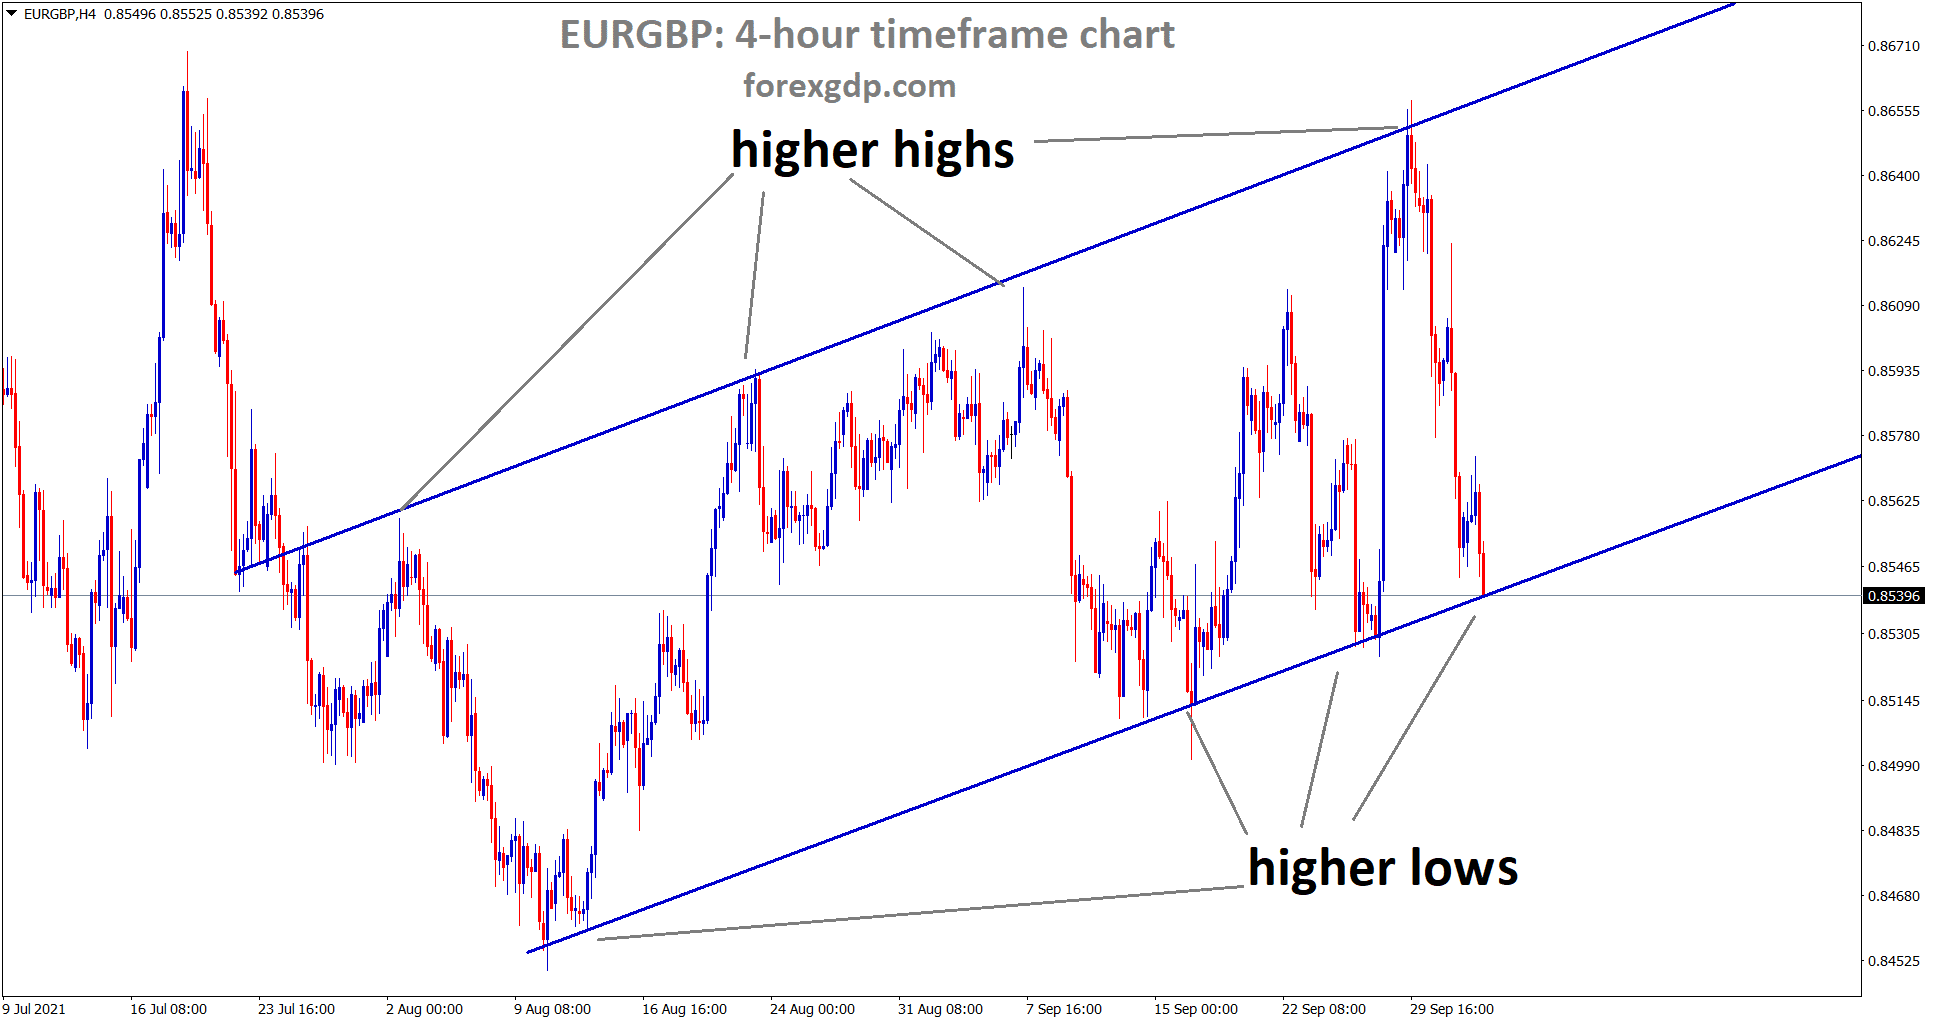 EURGBP hits the higher low level of an ascending channel line